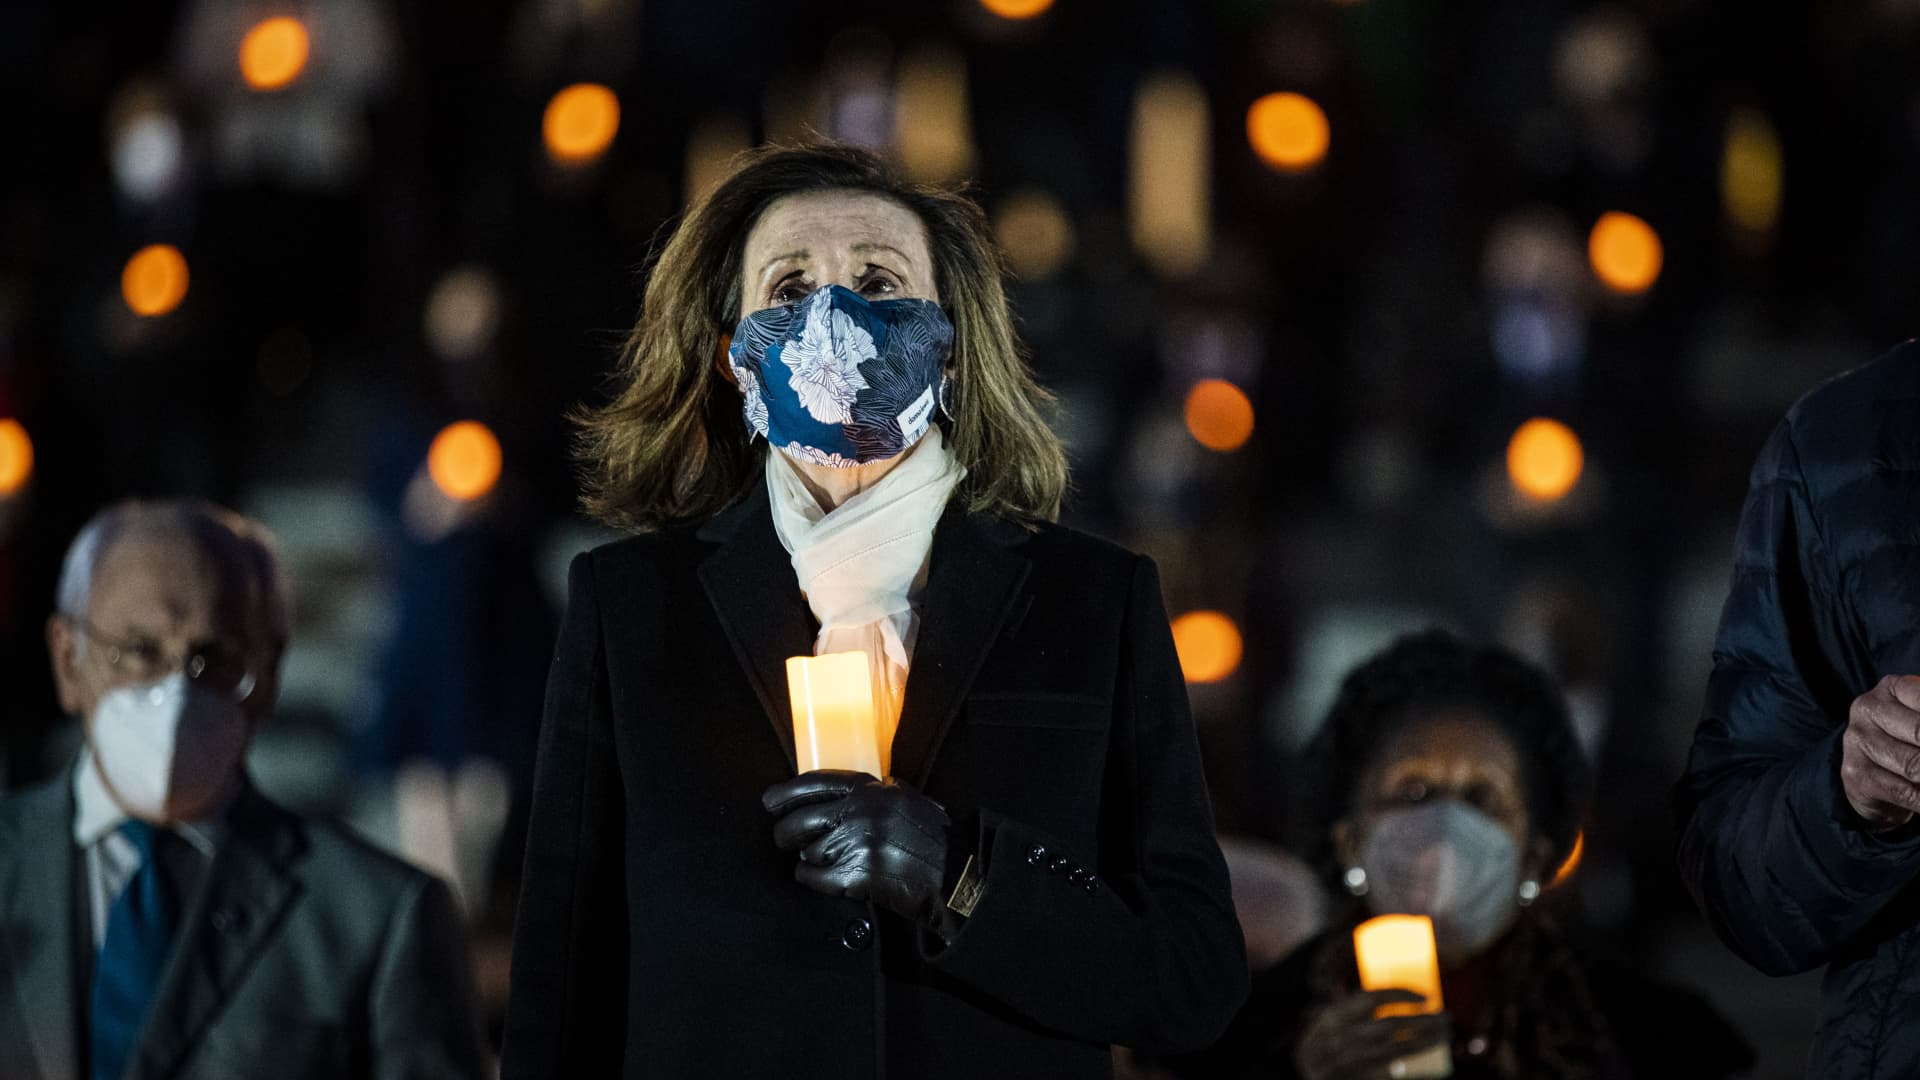 Speaker of the House Nancy Pelosi (D-CA), joins fellow members of Congress to observe a moment of silence on the steps of the U.S. Capitol, on February 23, 2021 in Washington, DC.